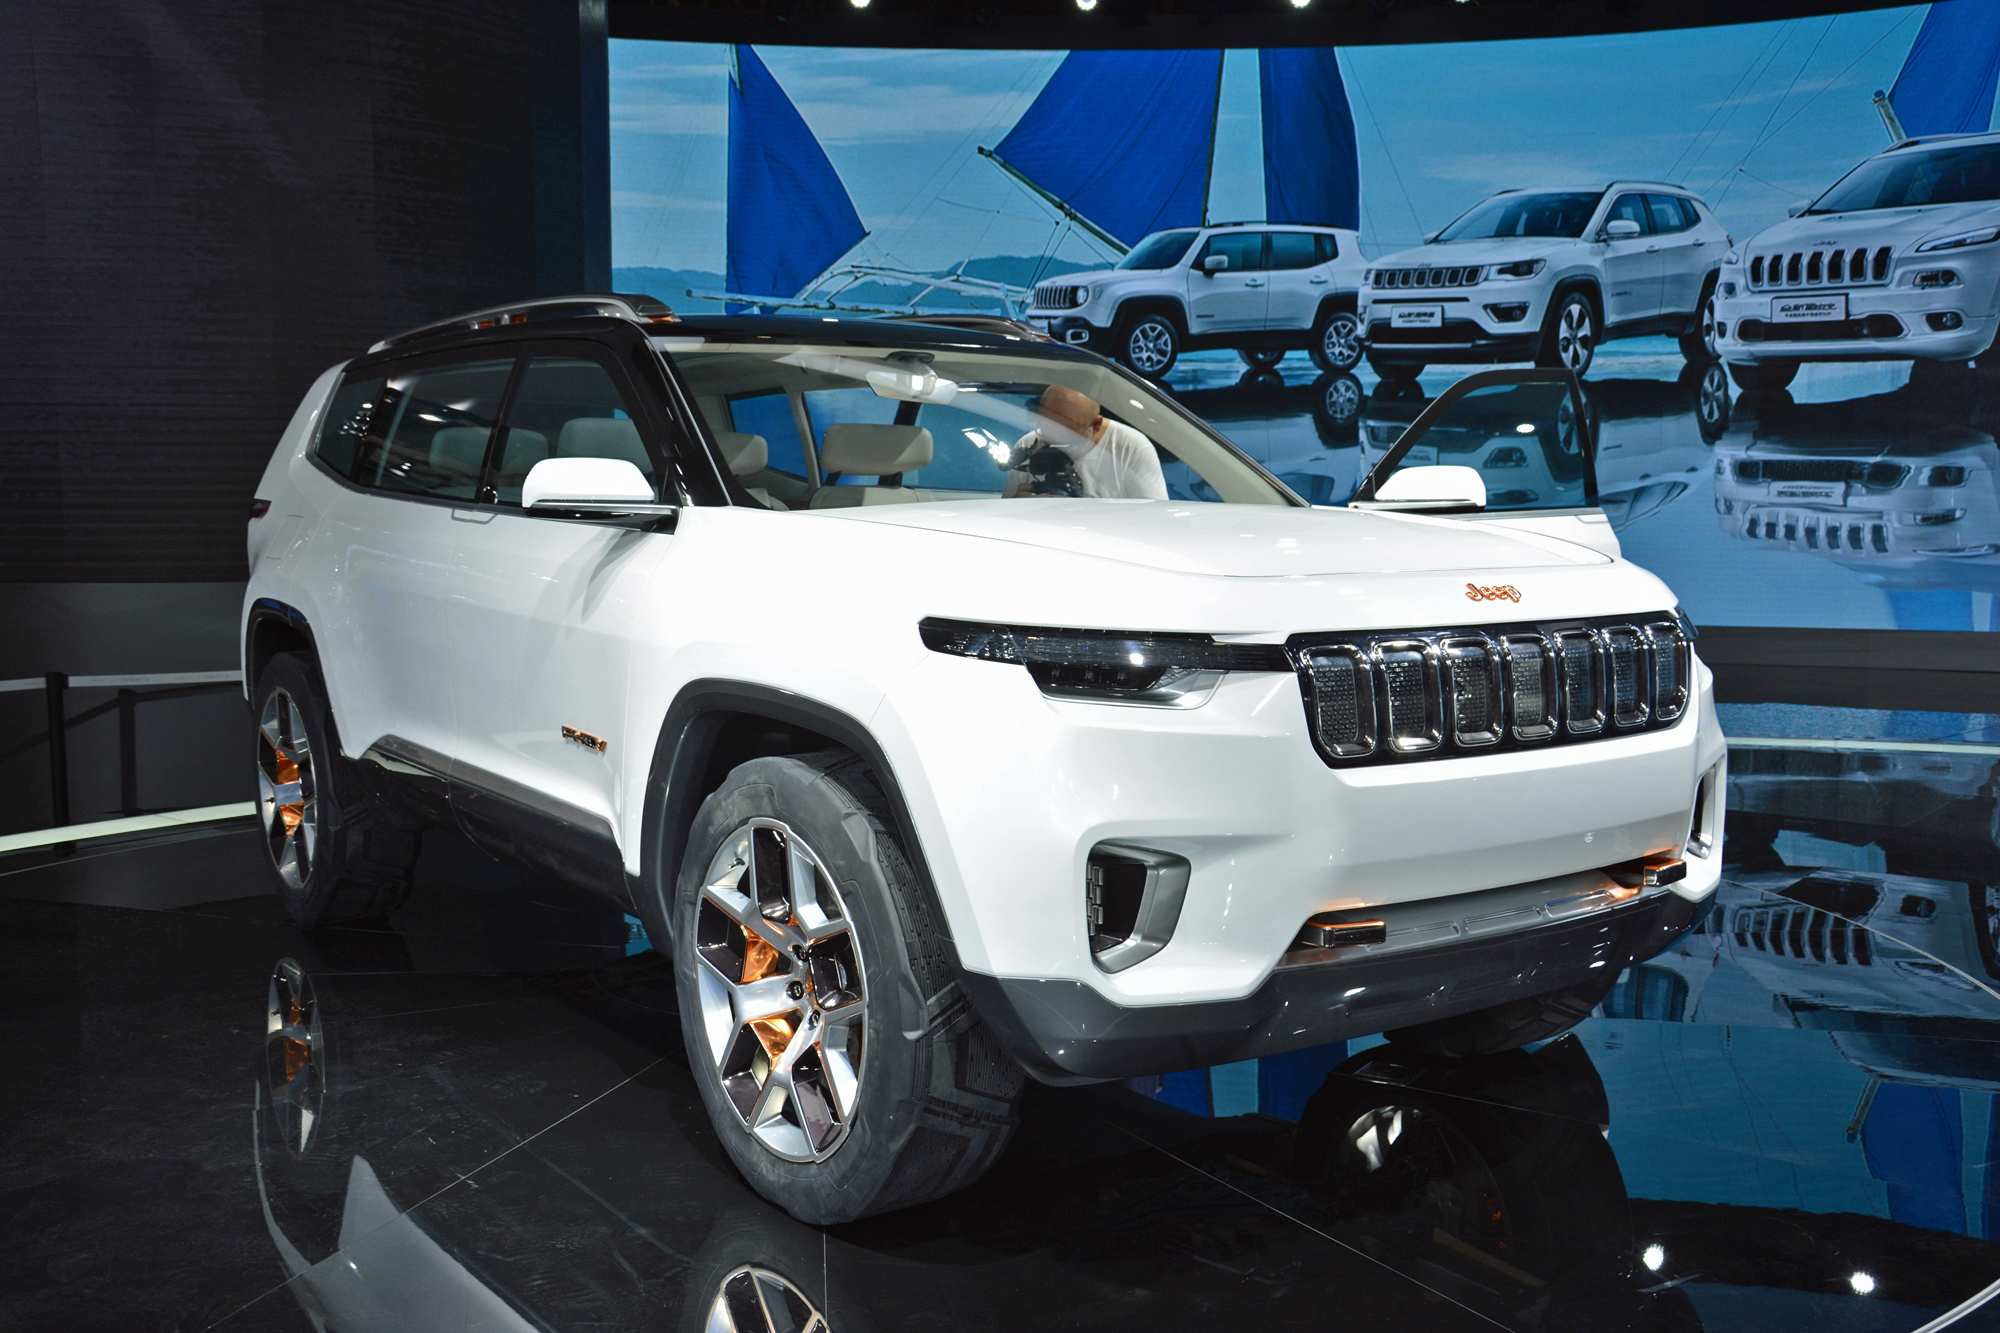 18 Concept of When Will The 2020 Jeep Grand Cherokee Be Released Engine with When Will The 2020 Jeep Grand Cherokee Be Released